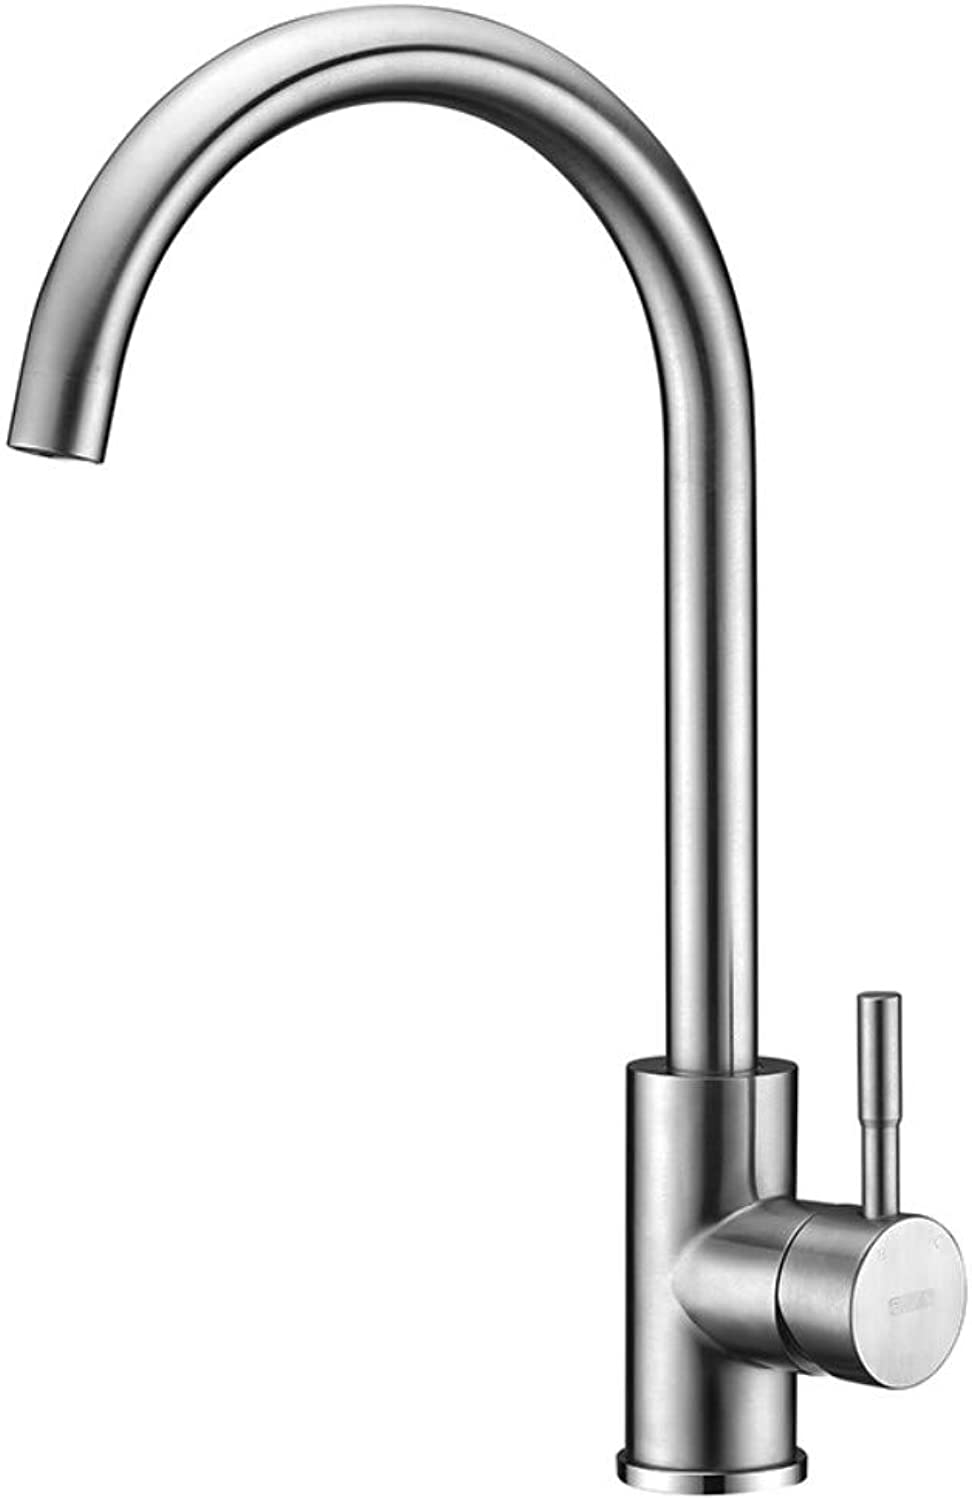 IBathUS 304 stainless steel kitchen faucet hot and cold sink faucet redatable sink faucet